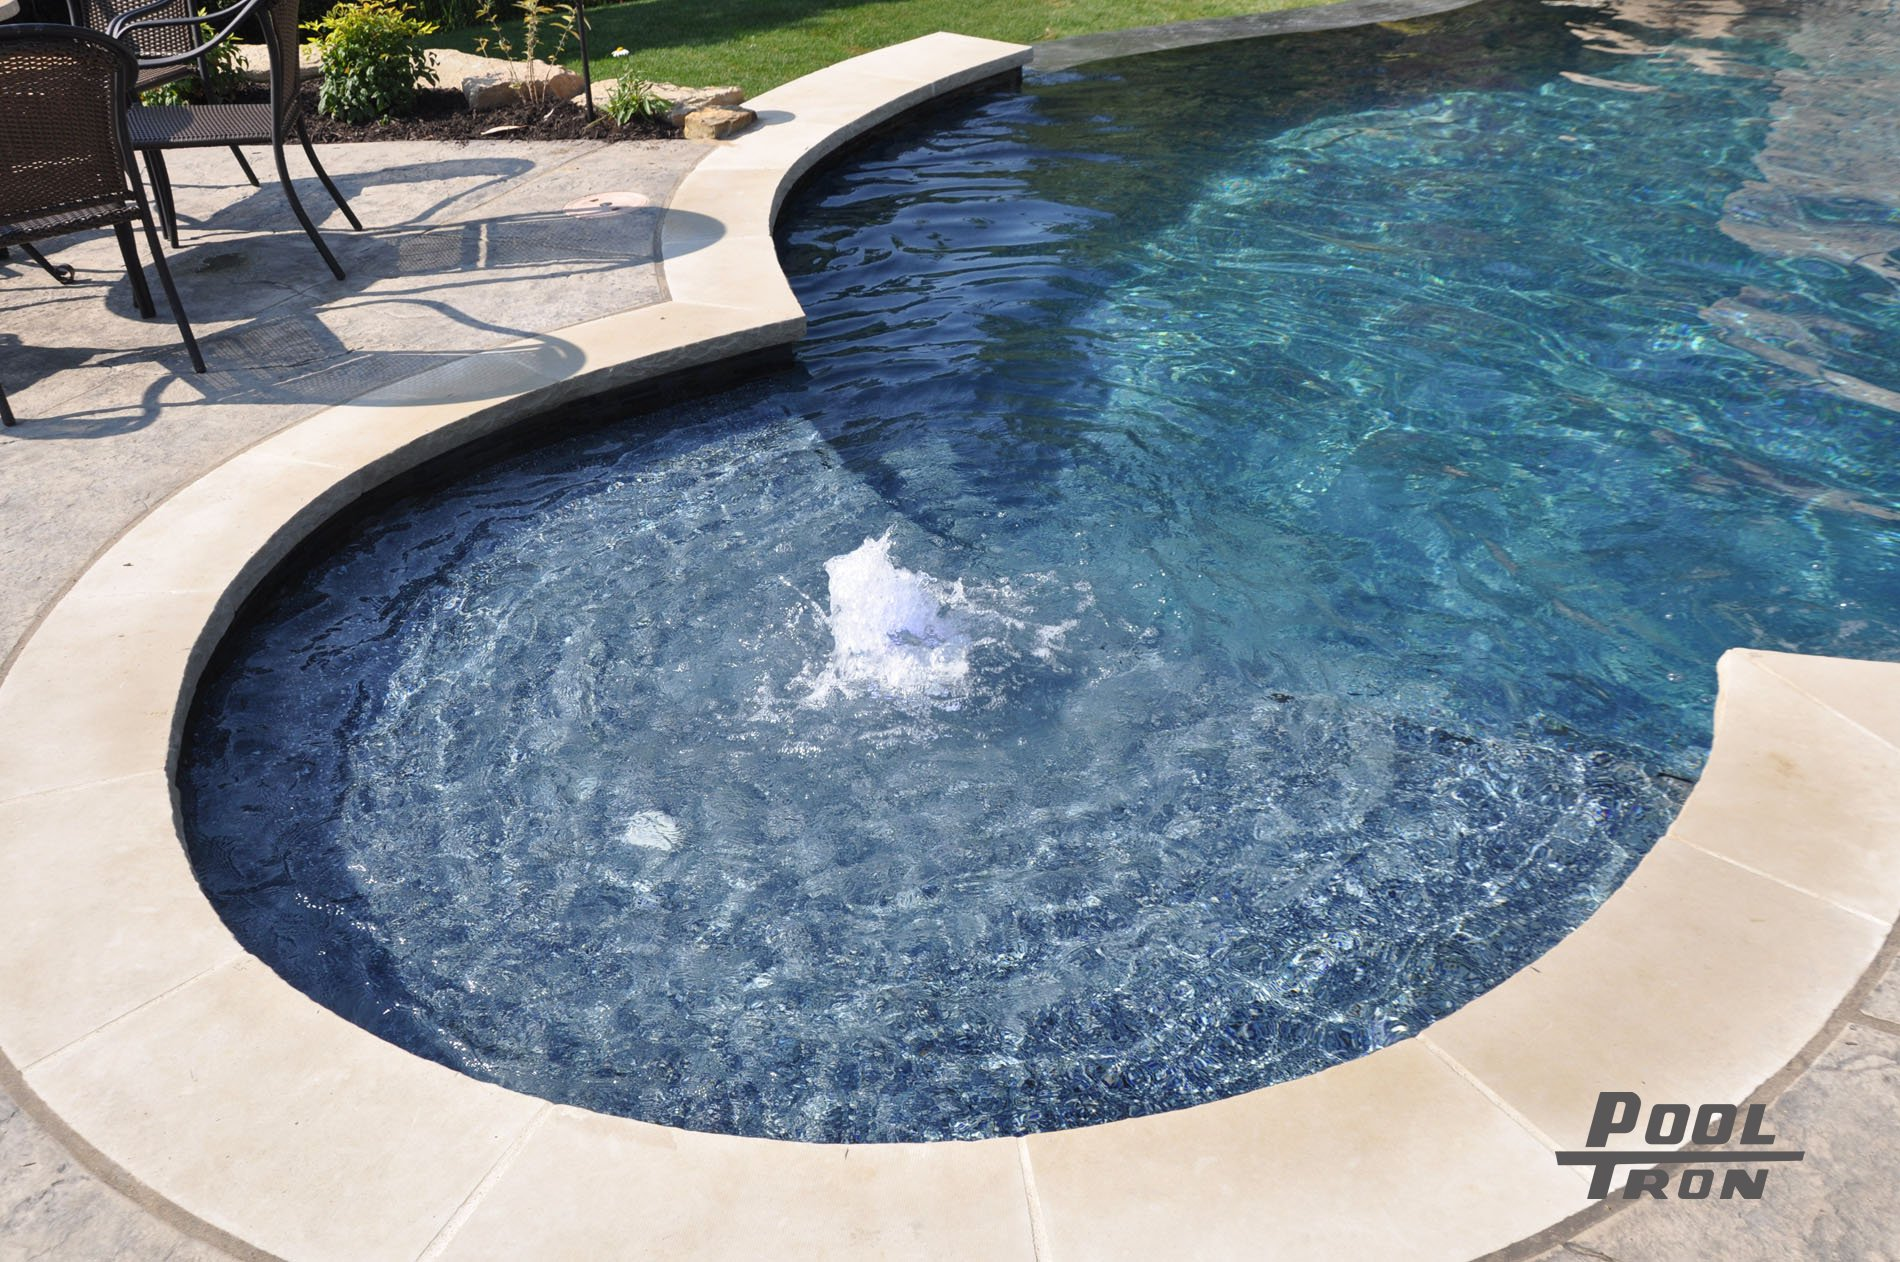 Tron Pools Special Features